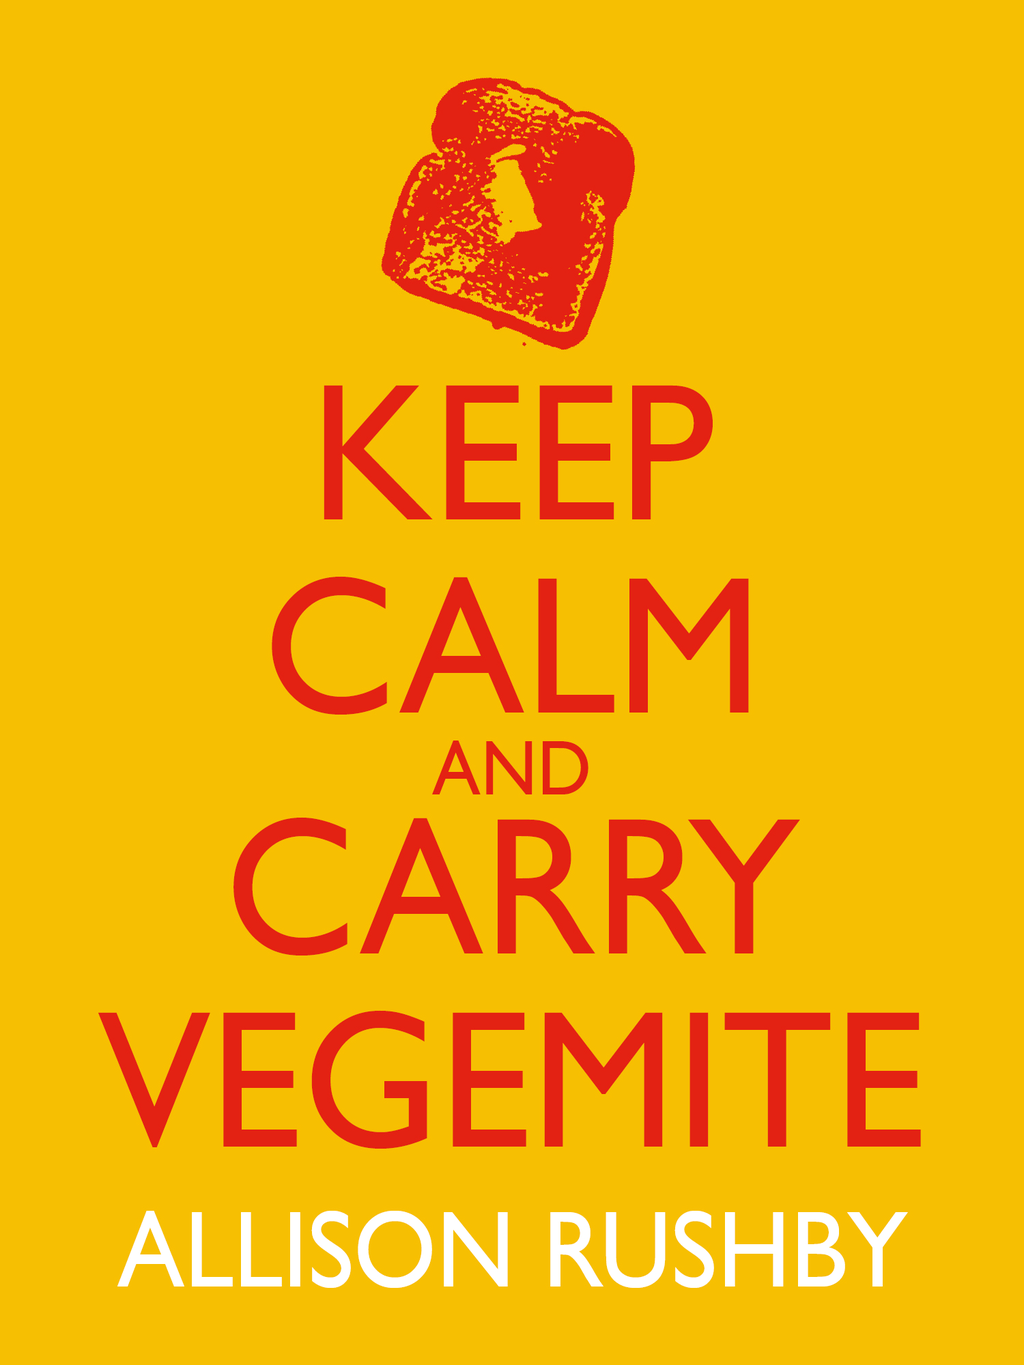 Keep Calm and Carry Vegemite